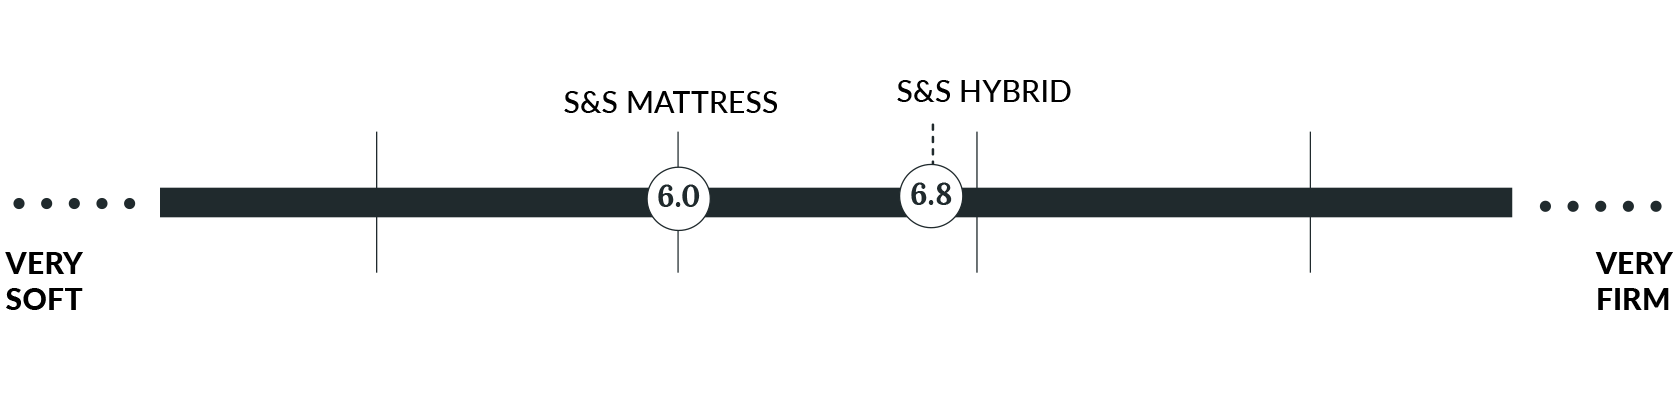 Silk & Snow mattress firmness chart